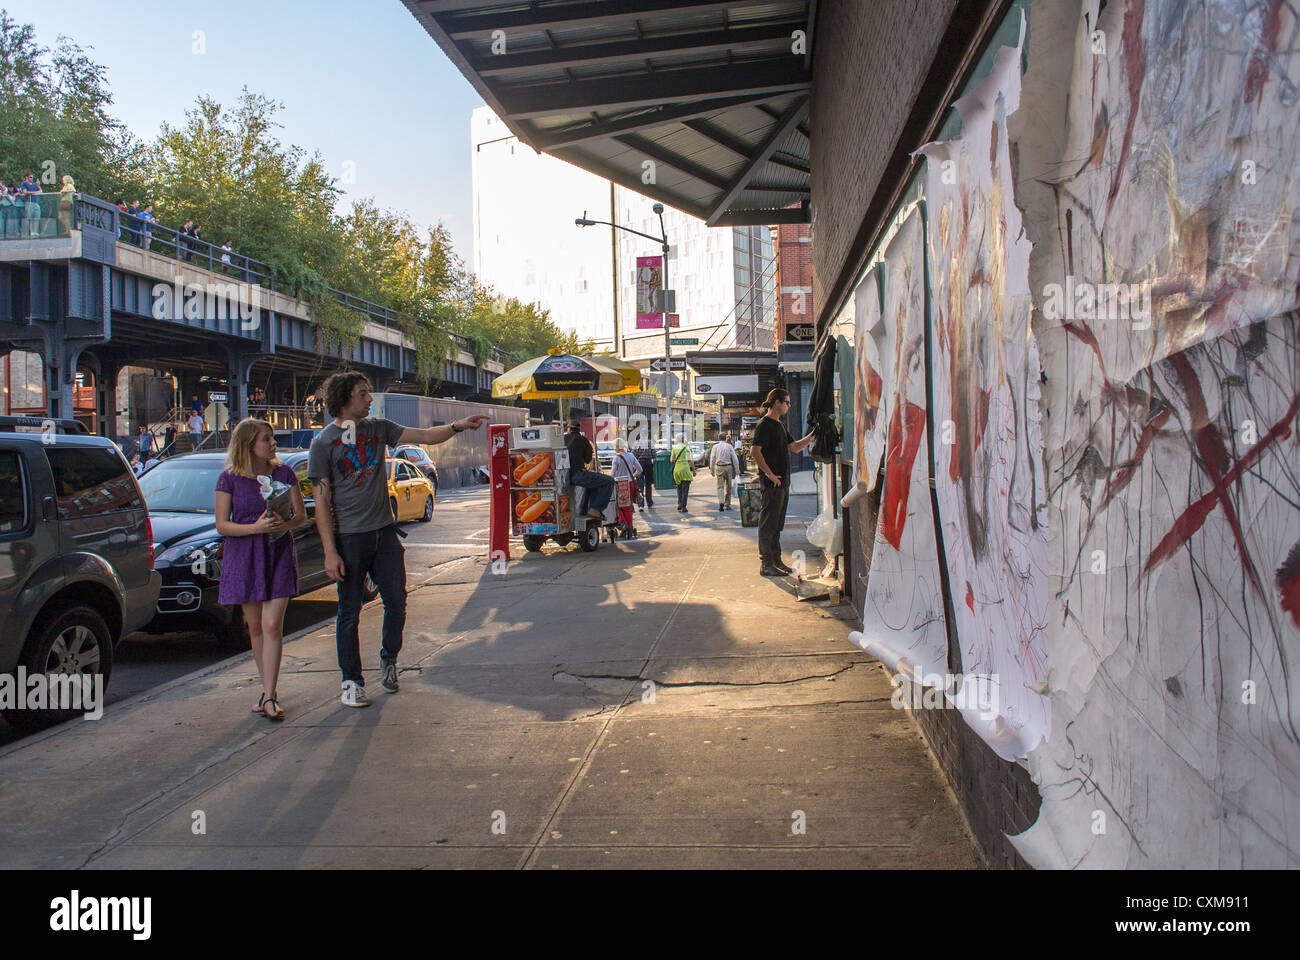 New York City, NY, USA, Street Artist Painting Wall, Scenes in the Meatpacking District, - Stock Image